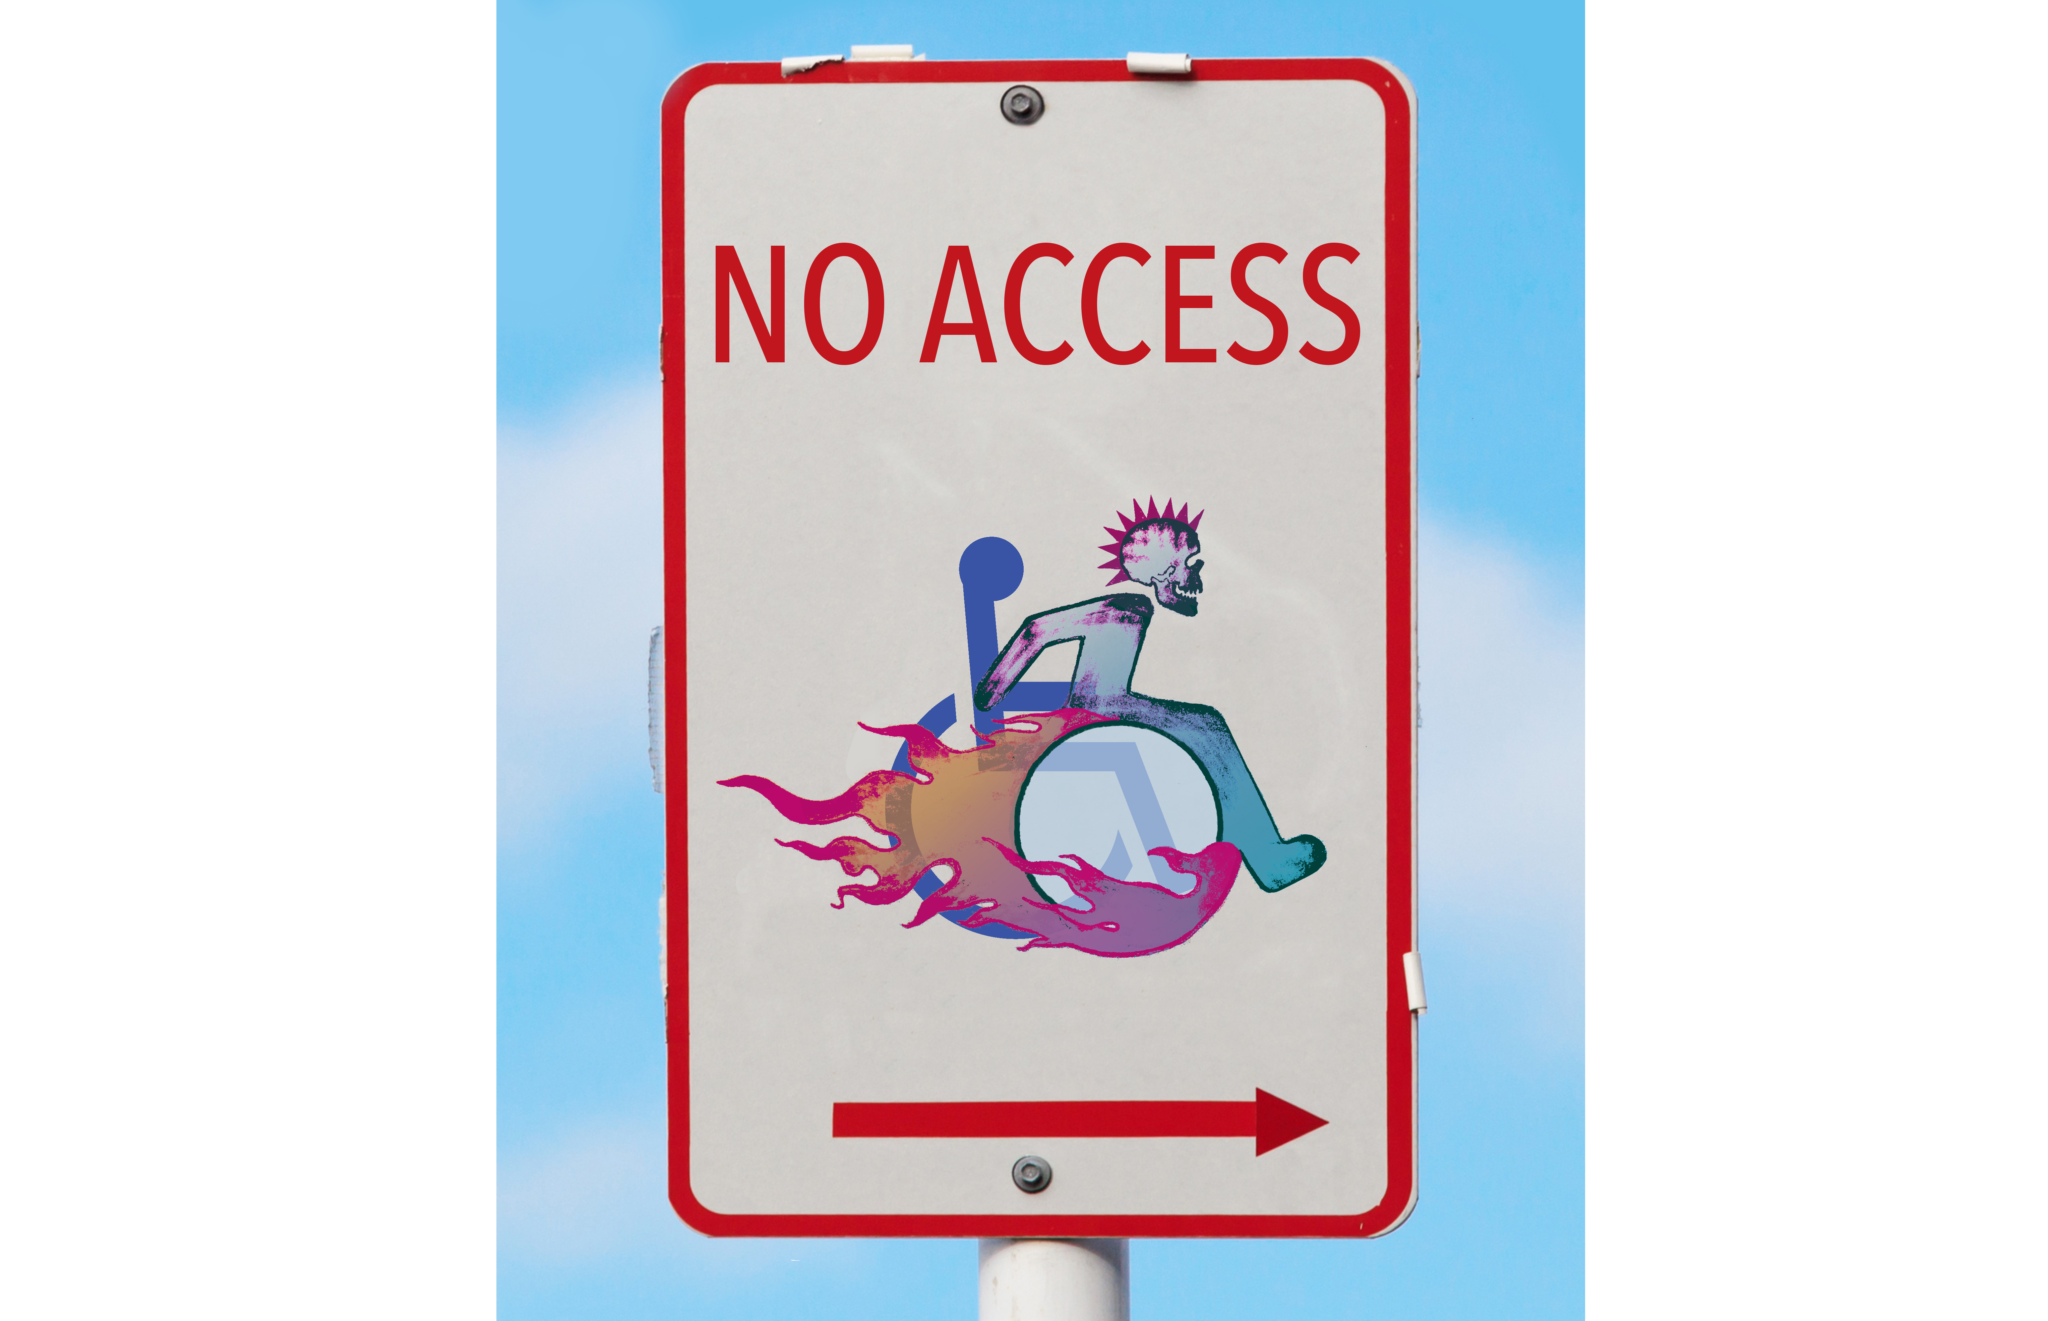 A NO ACCESS sign with a wheelchair on it. The wheelchair is on fire and has a mohawked figure sitting in it.